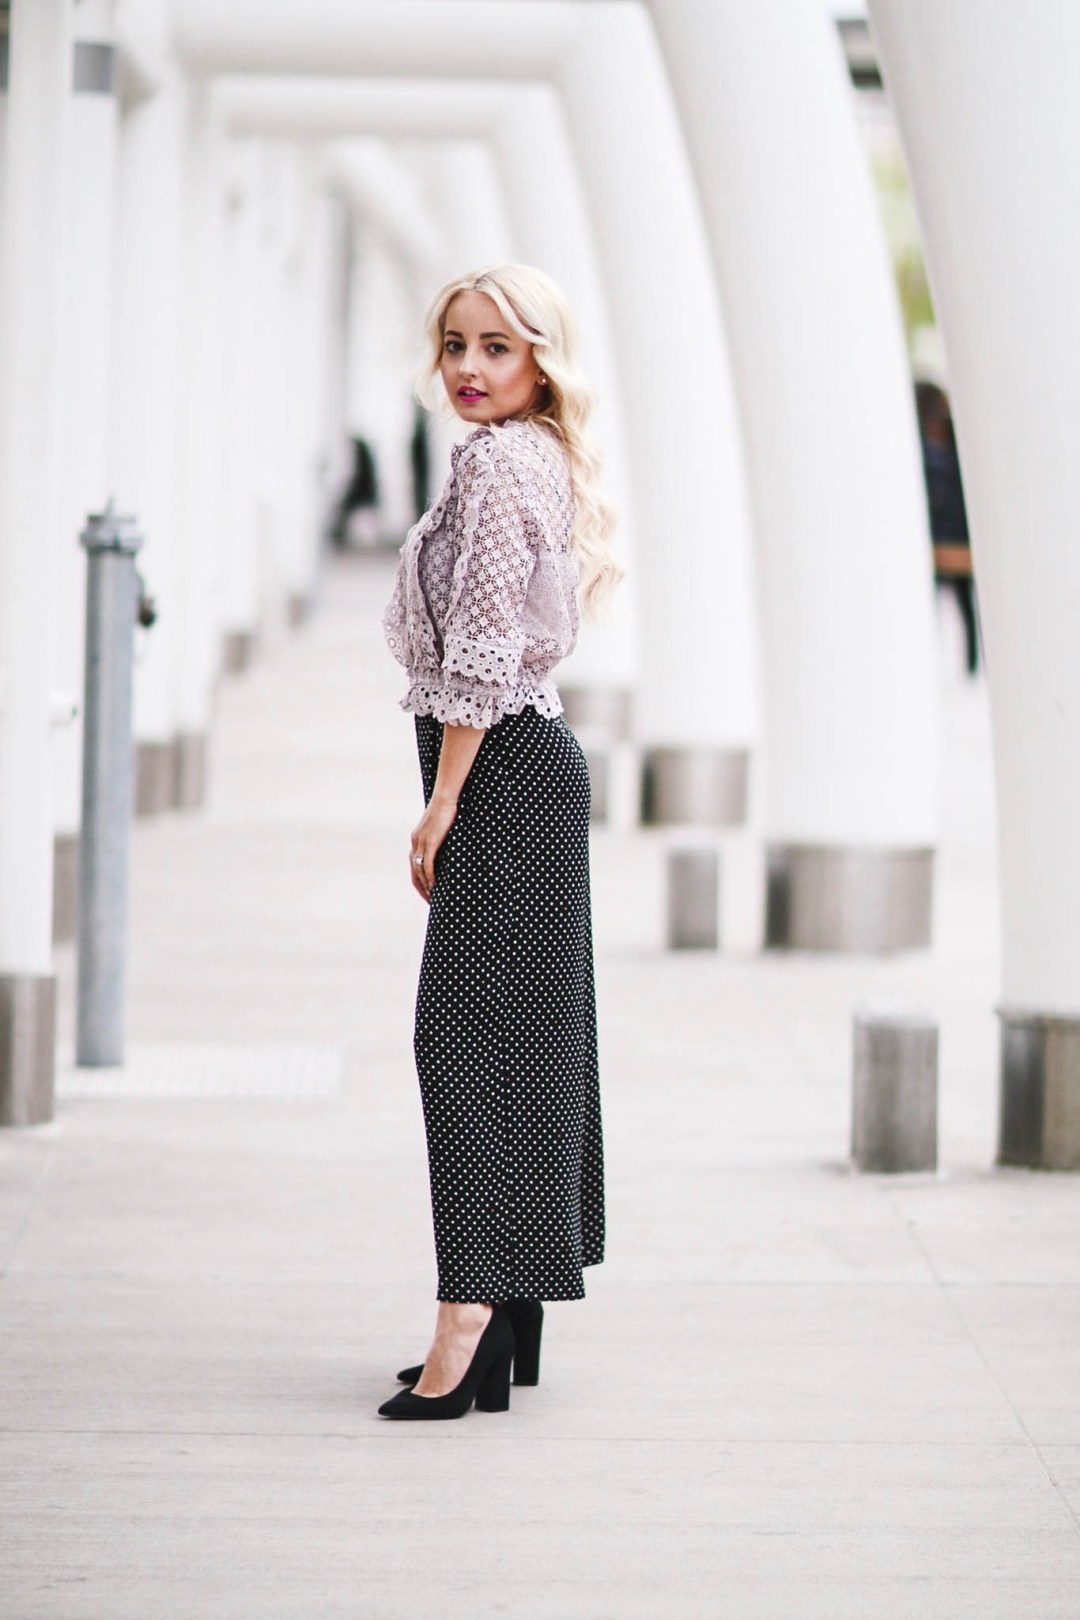 Alena Gidenko of modaprints.com styles polka dot trousers